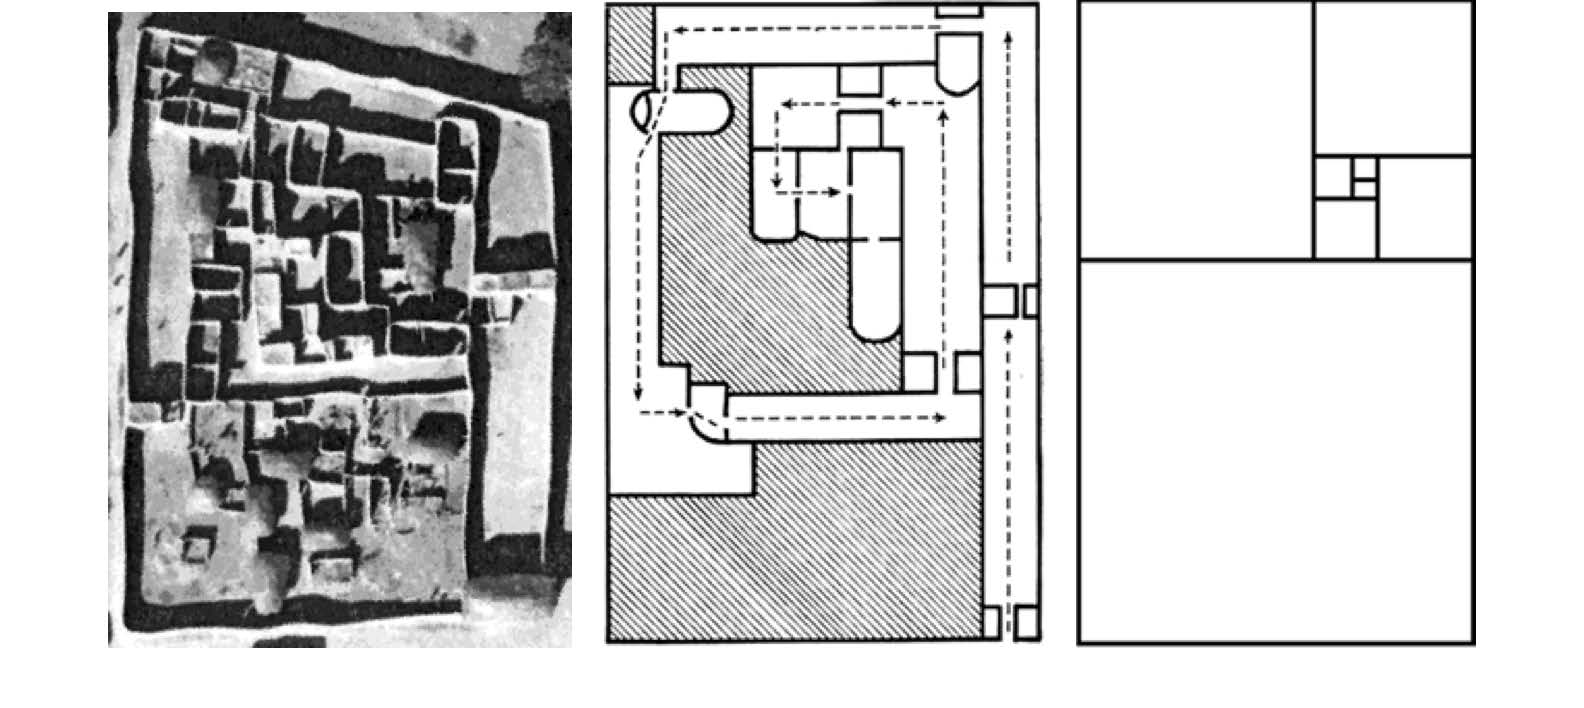 Series of images showing the aerial photo of palace of Chief in Logone-Birni, path through the palace, and visualization of golden rectangle spiral